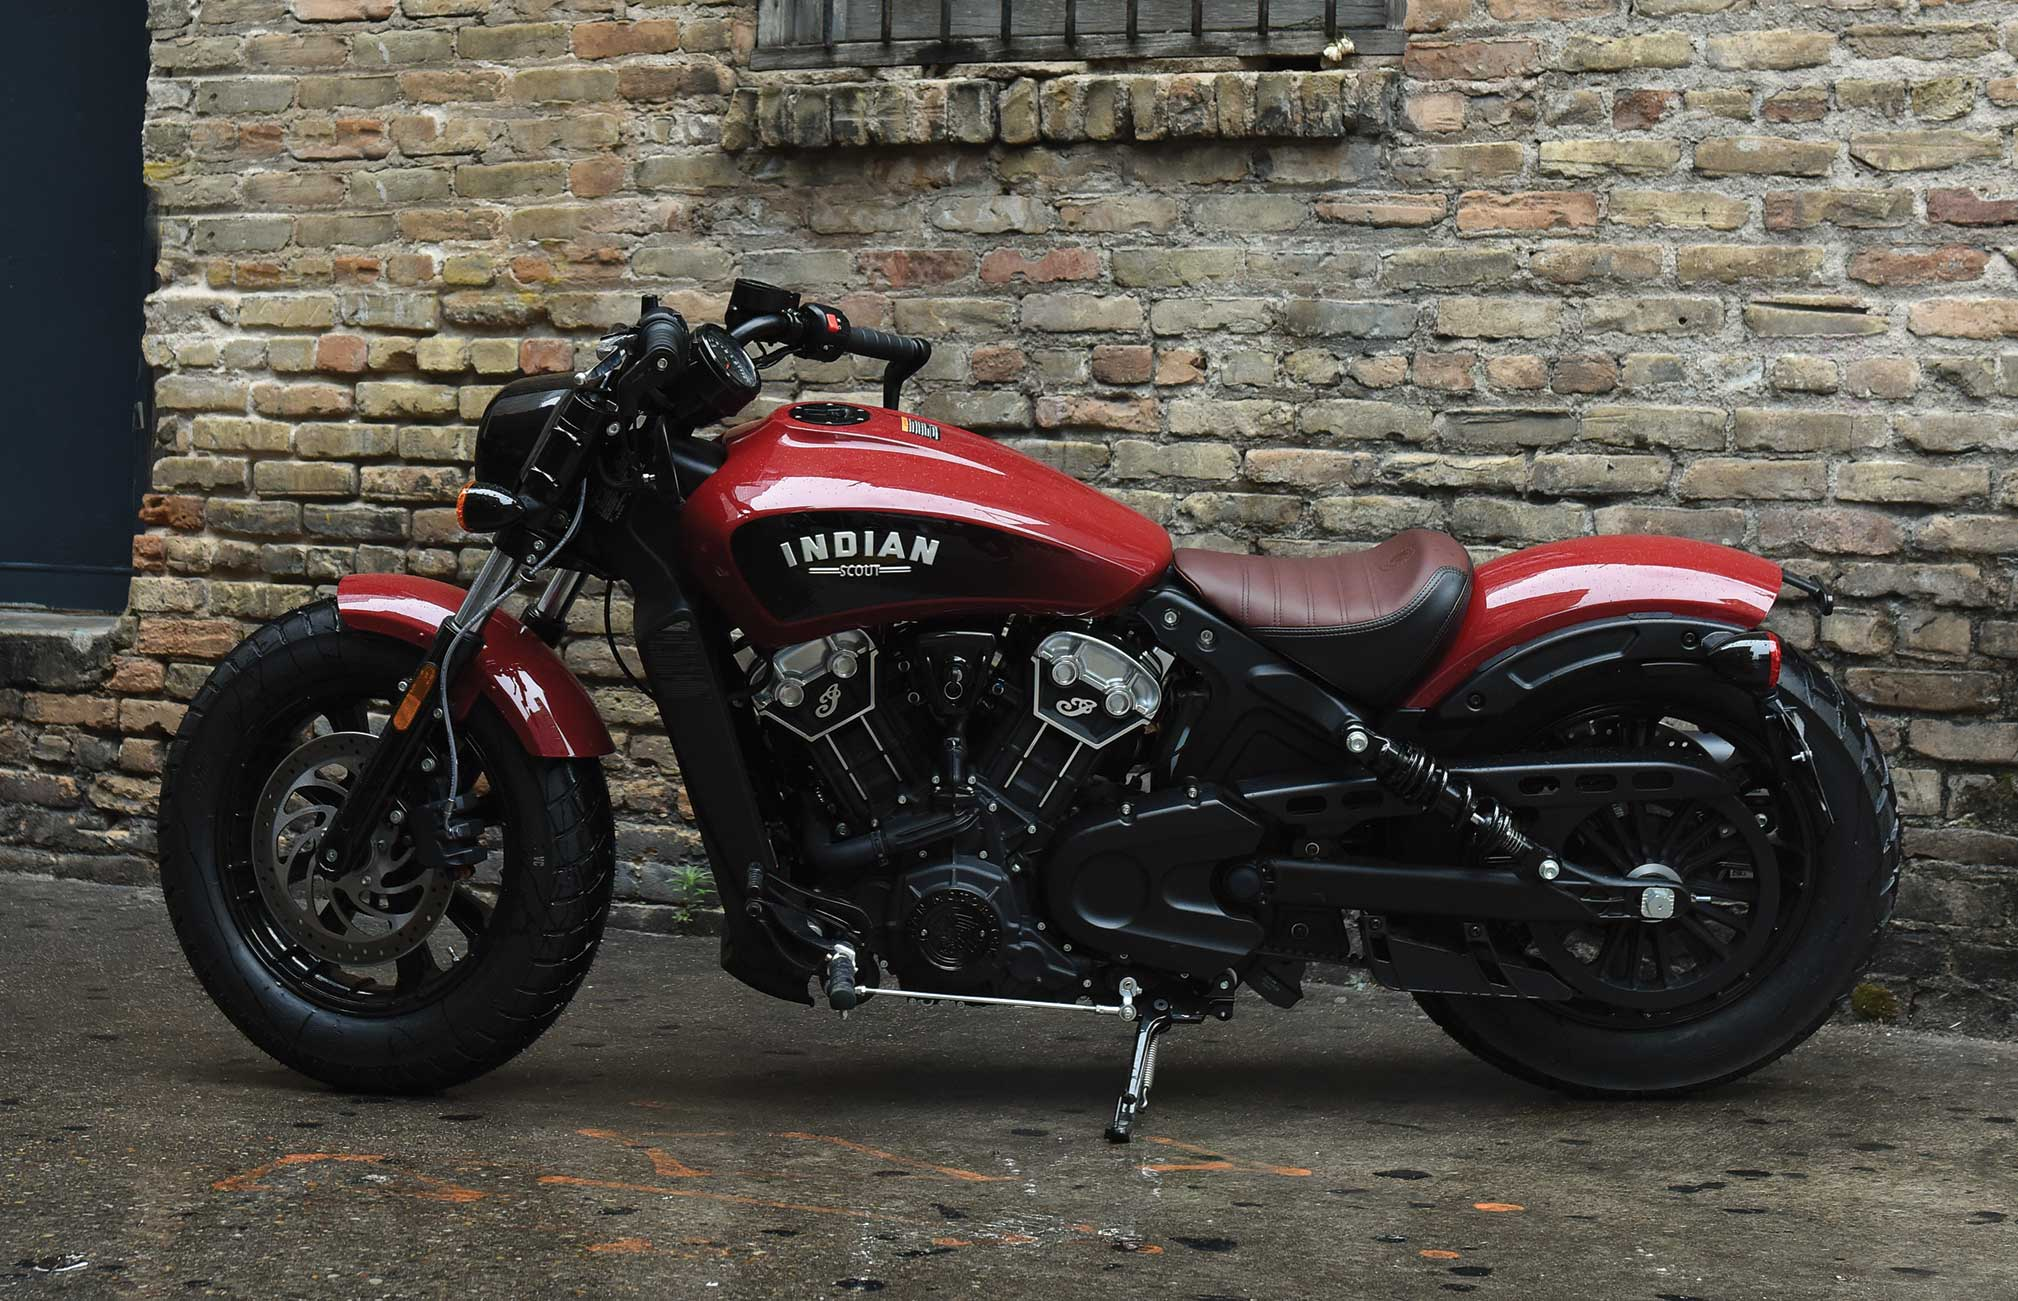 2018 indian scout bobber review • totalmotorcycle